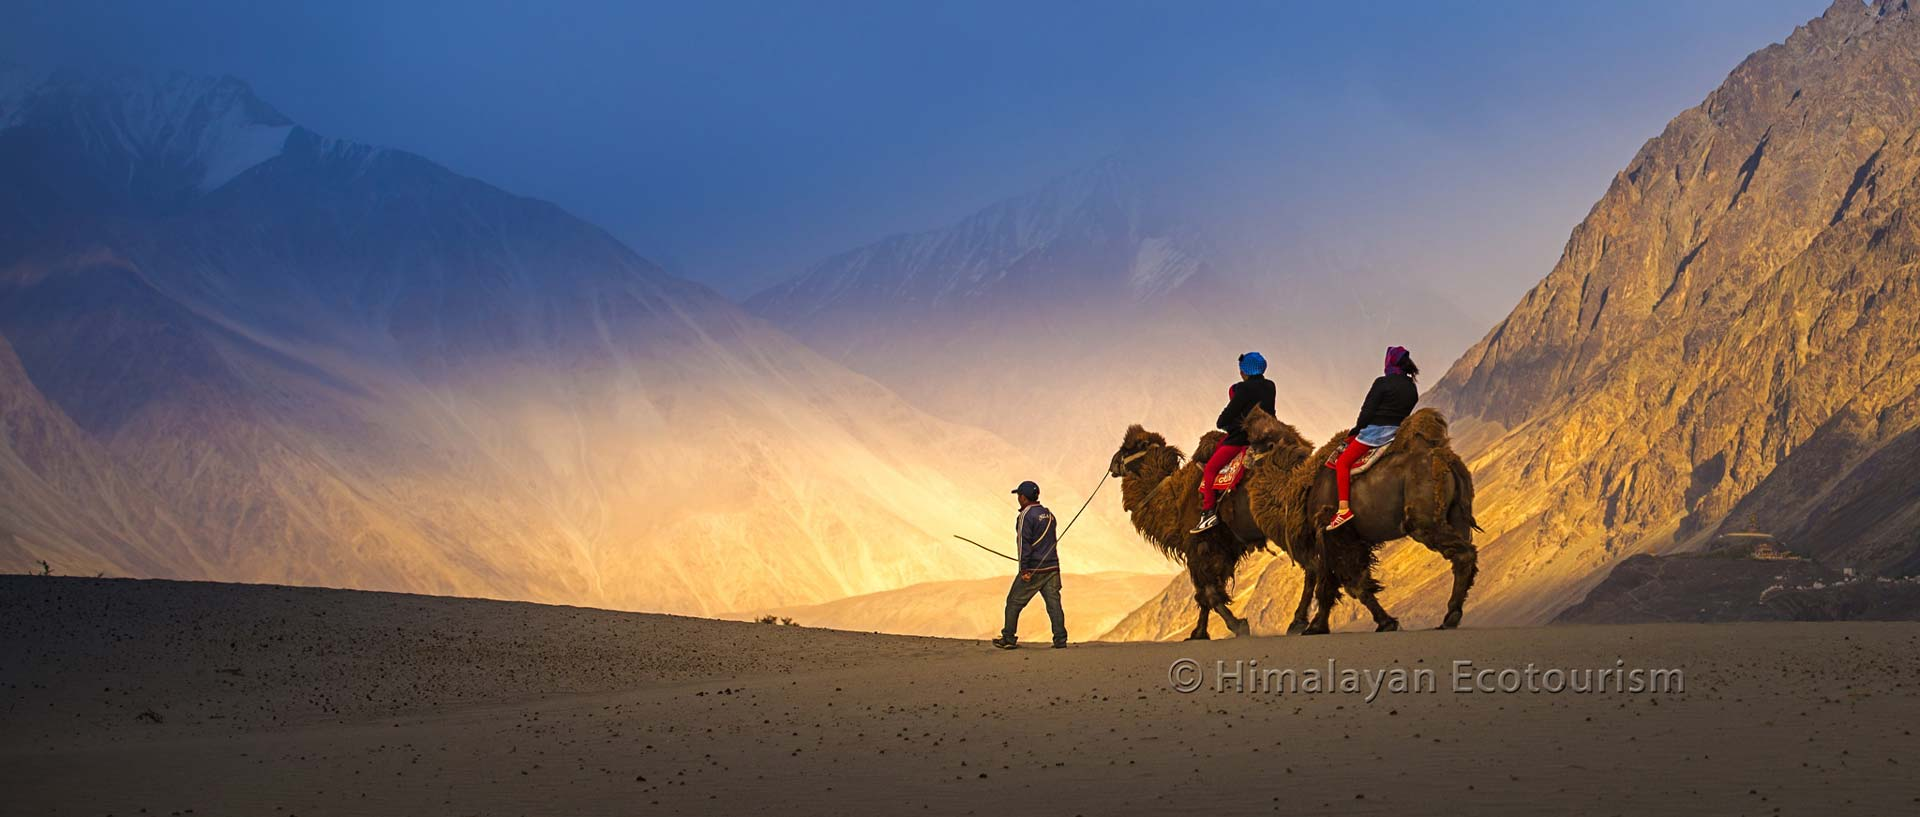 Camel riding in the Nubra valley, Ladakh